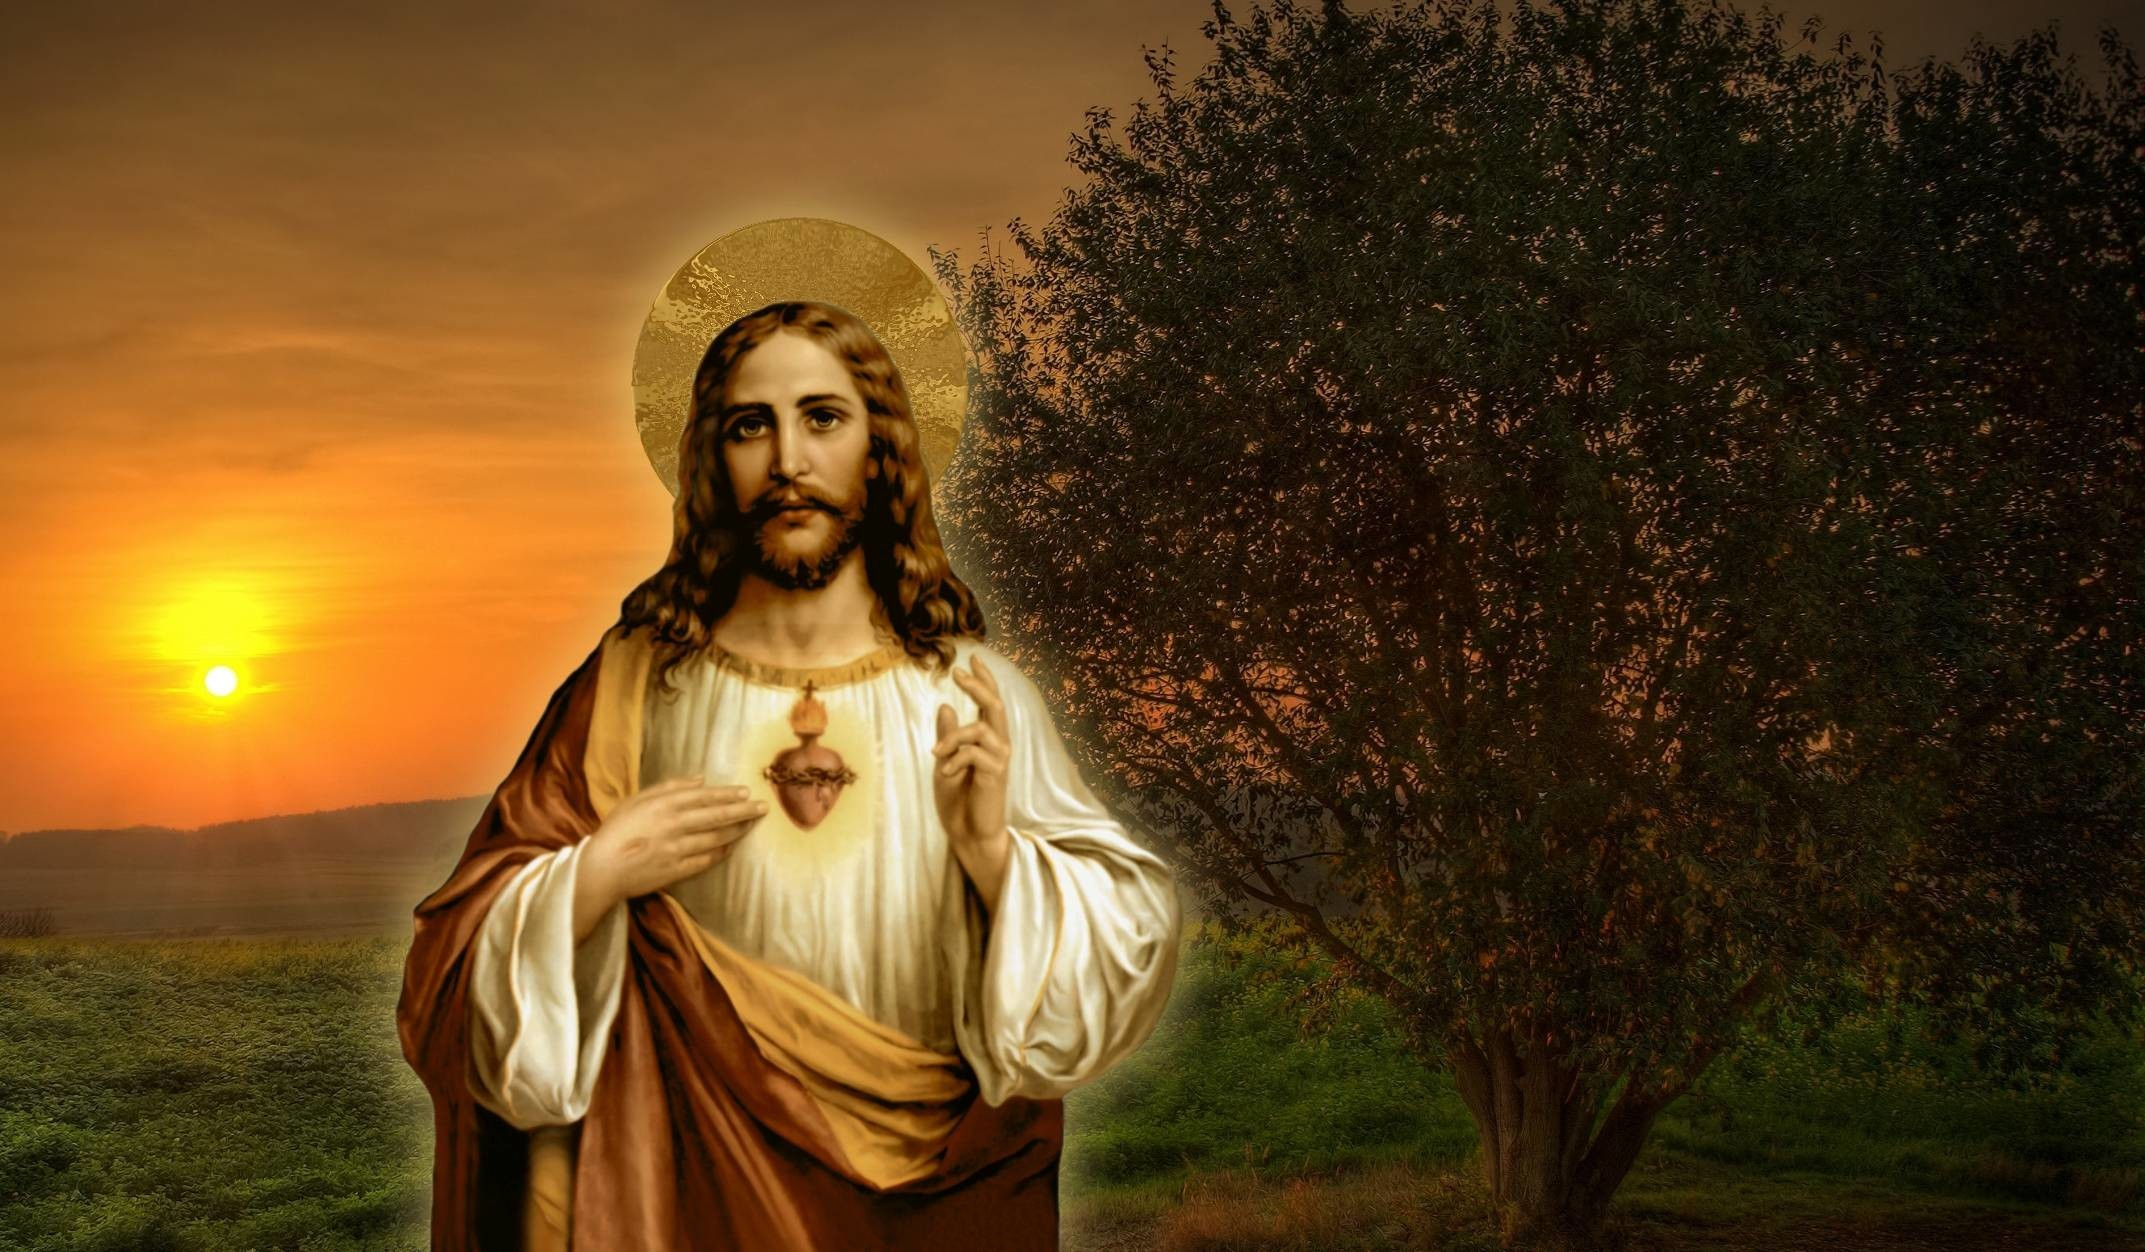 biography of jesus christ Life, teachings, and death of jesus of nazareth (the christ, or the anointed one of god) in the 1st century ce it has become the largest of the world's religions and, geographically, the most widely diffused of all faiths.